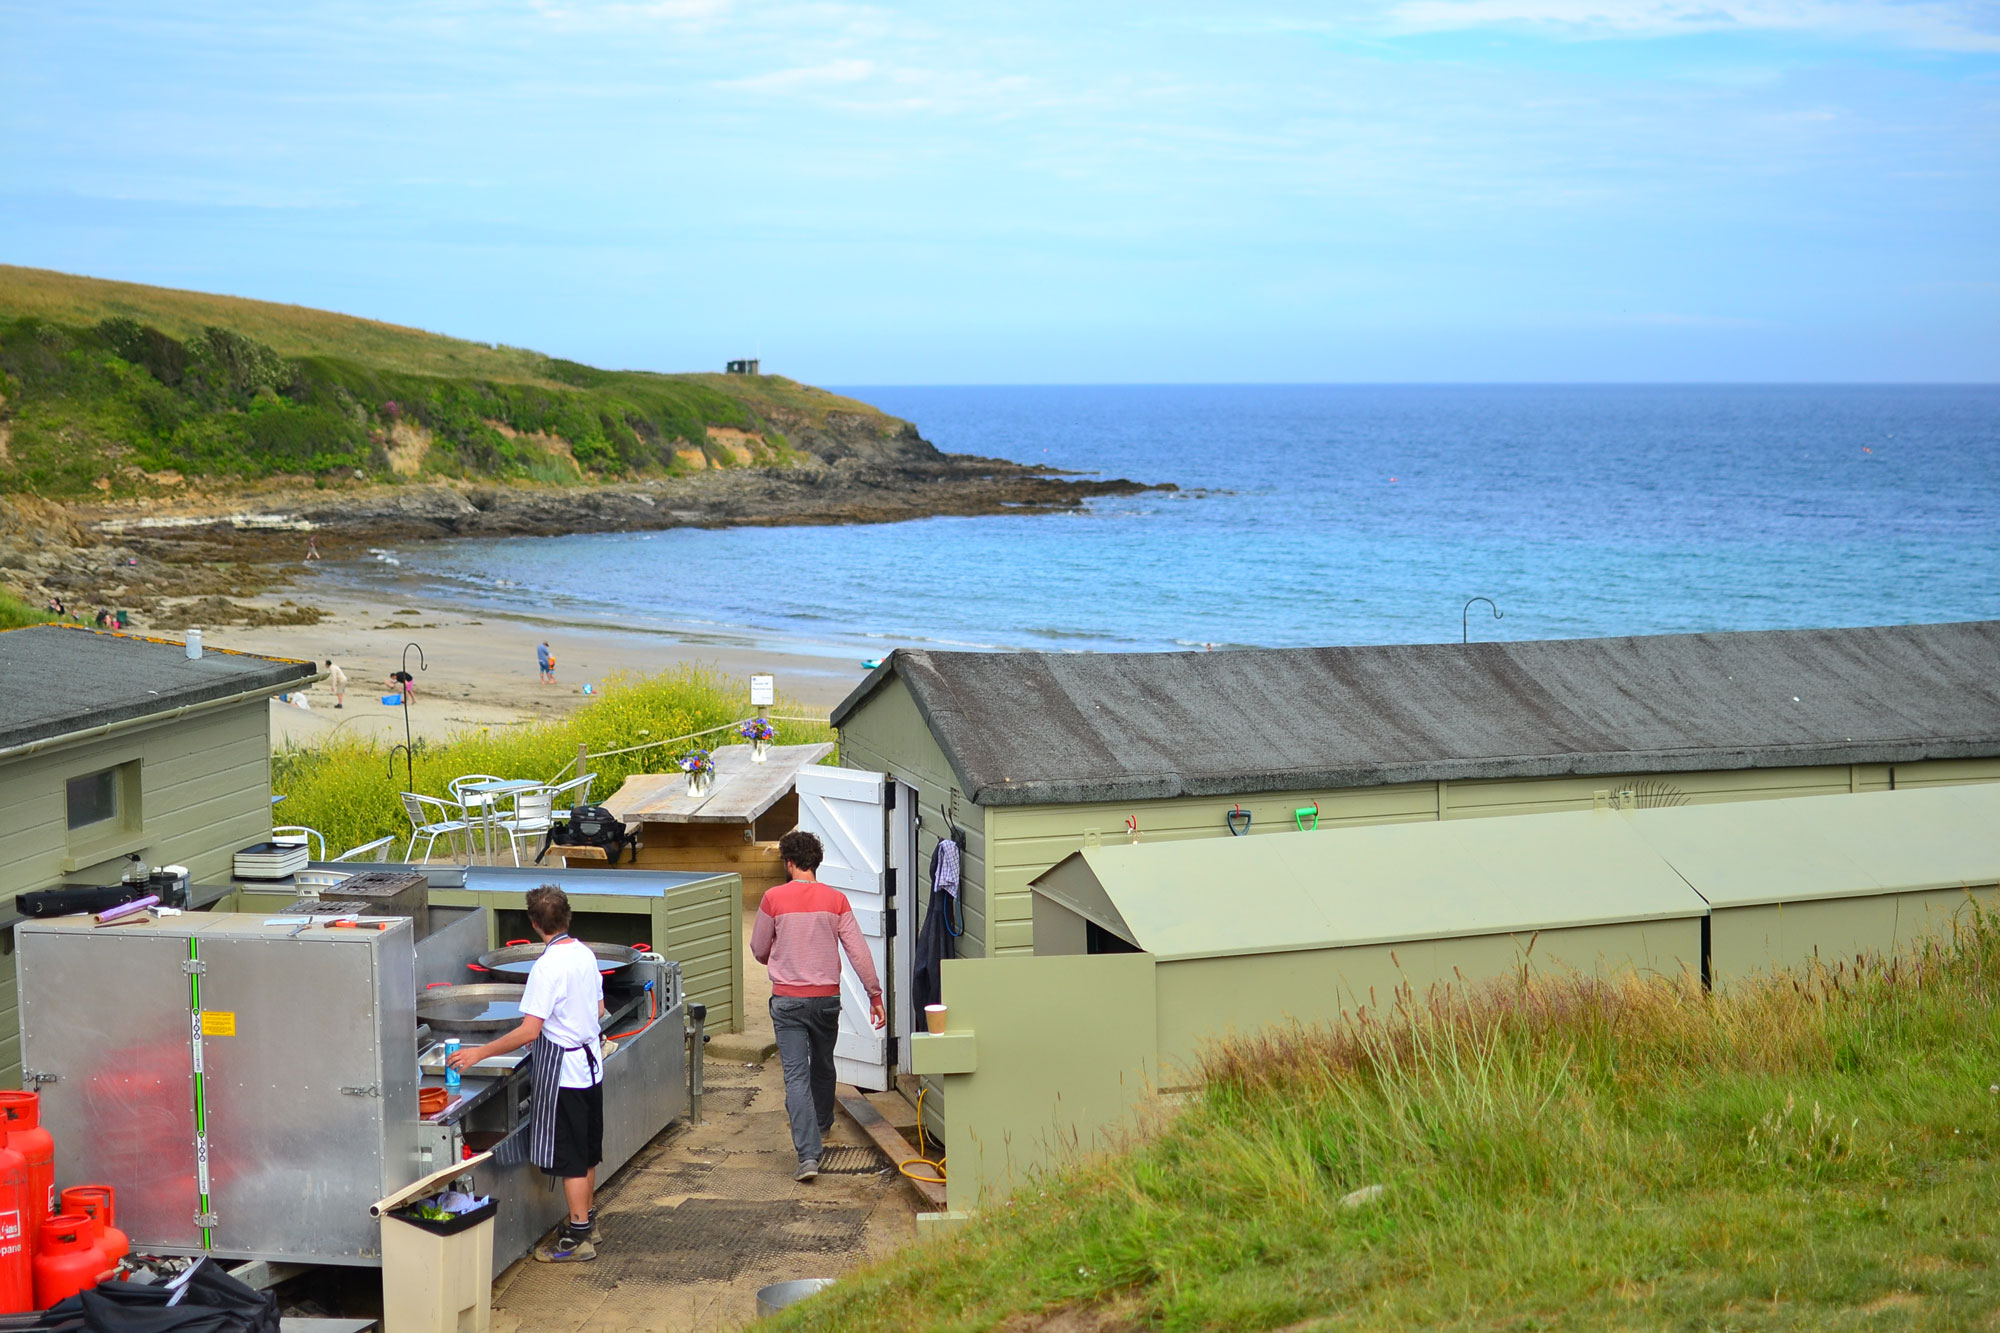 The Hidden Hut cafe, close to Portscatho in Cornwall. All photos by the author.